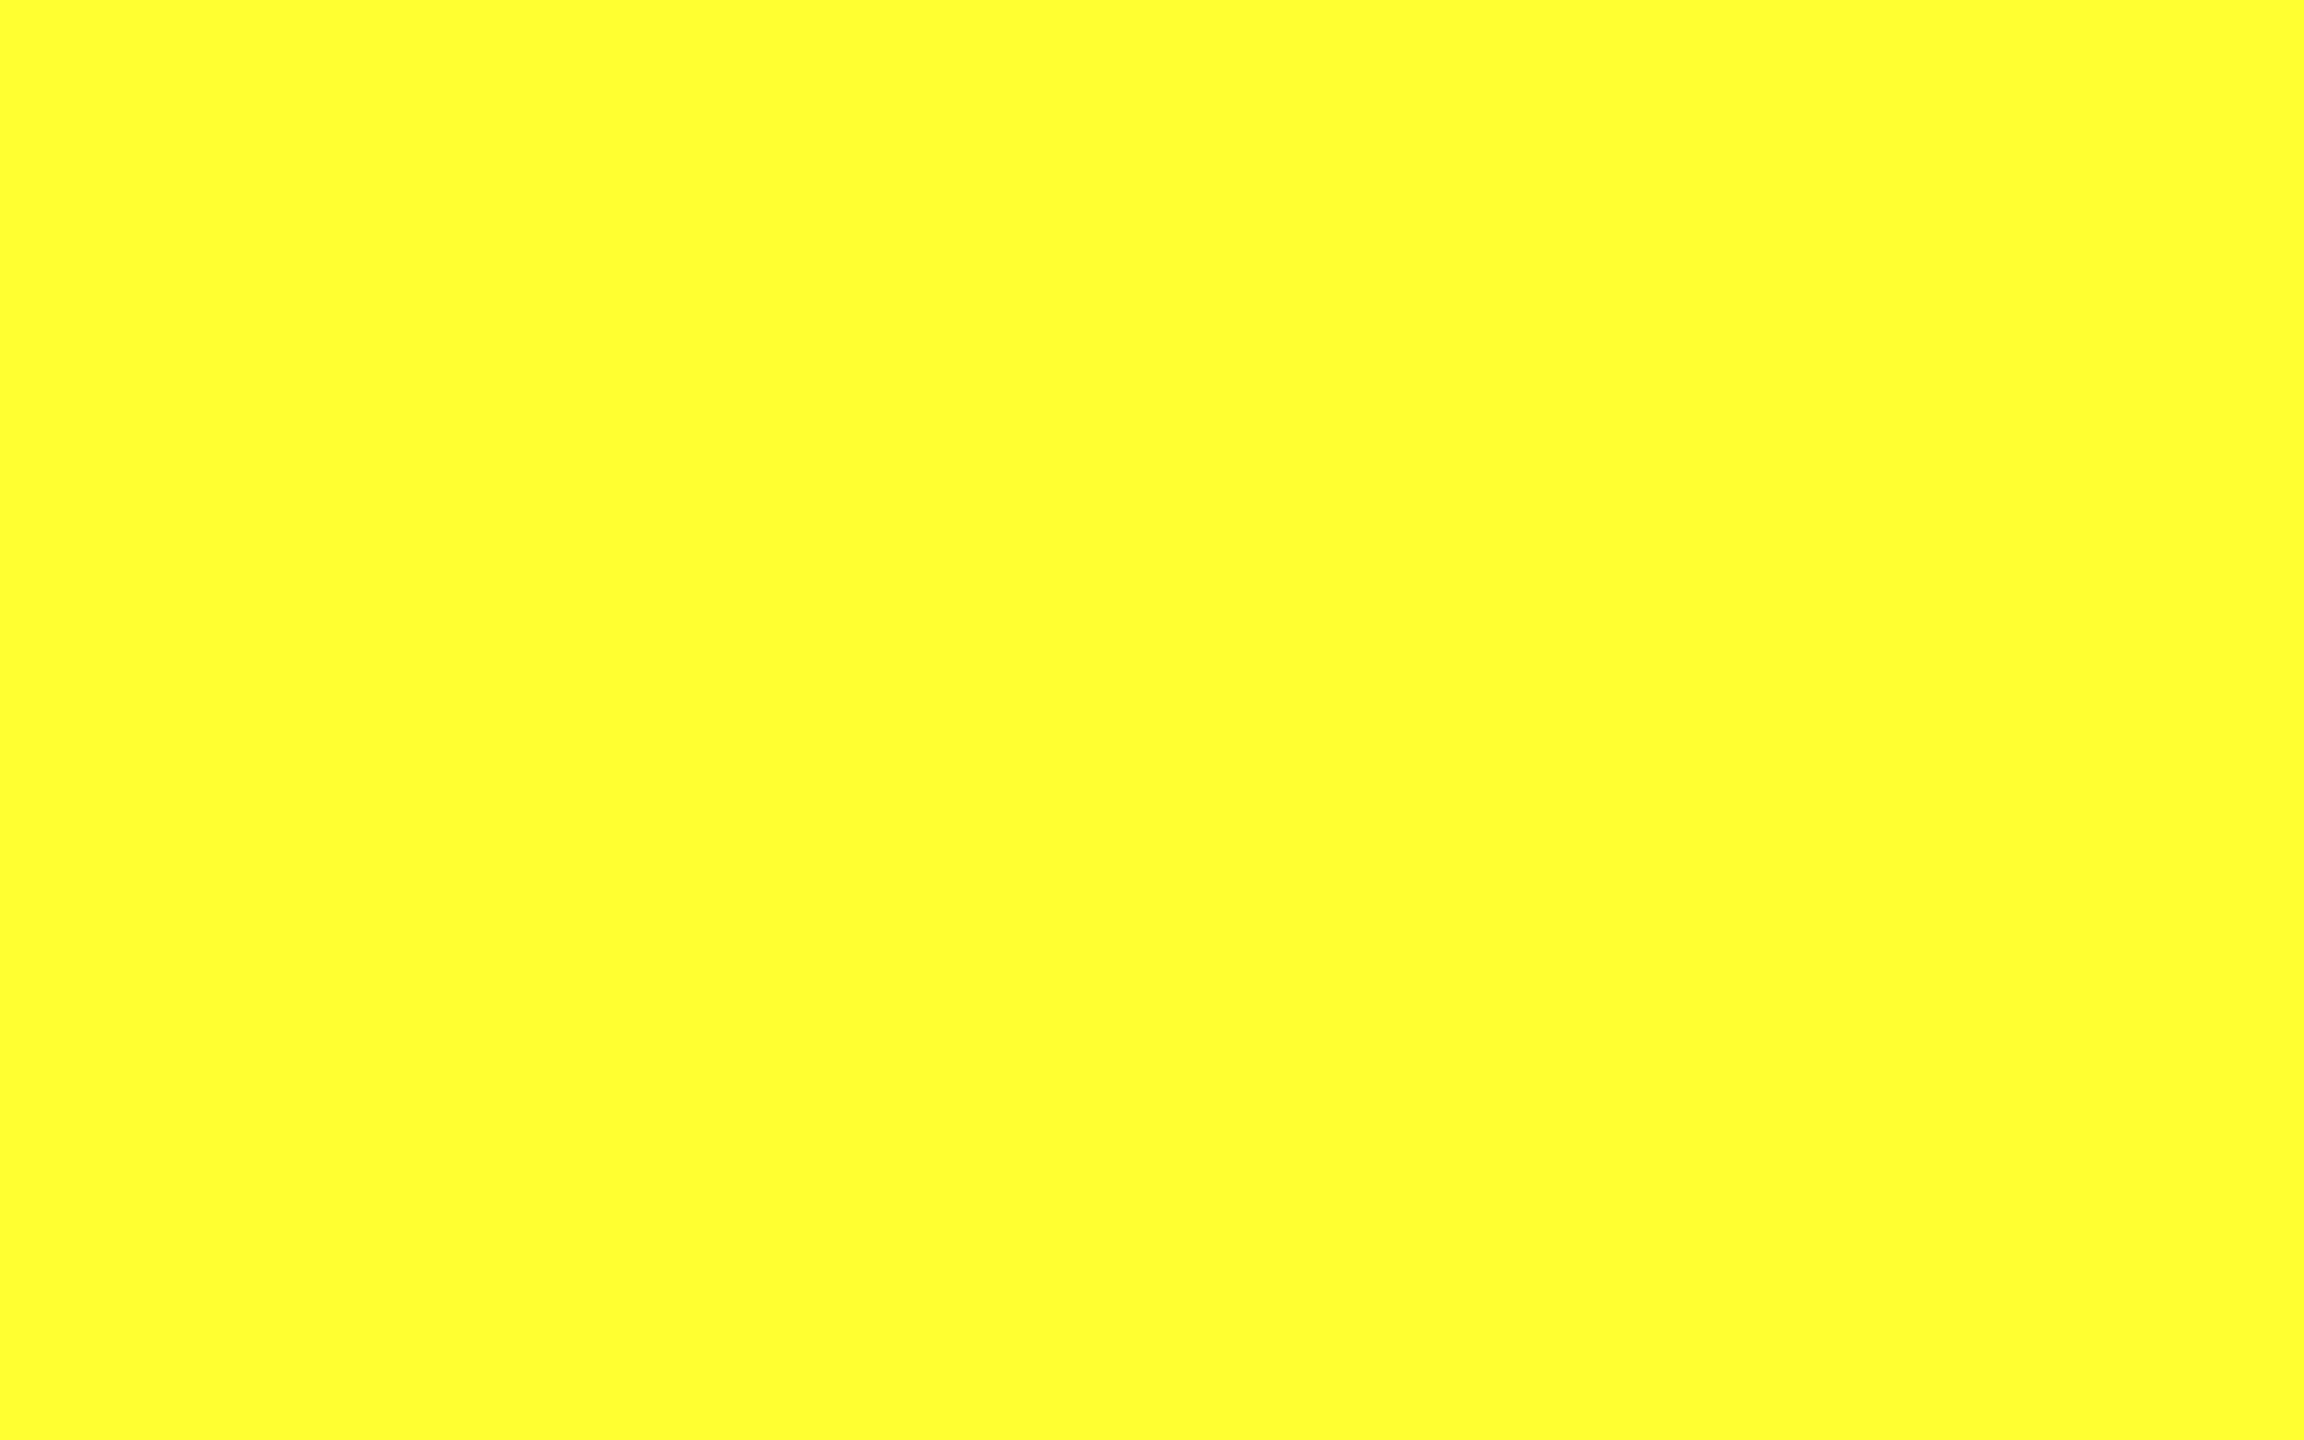 2304x1440 Daffodil Solid Color Background